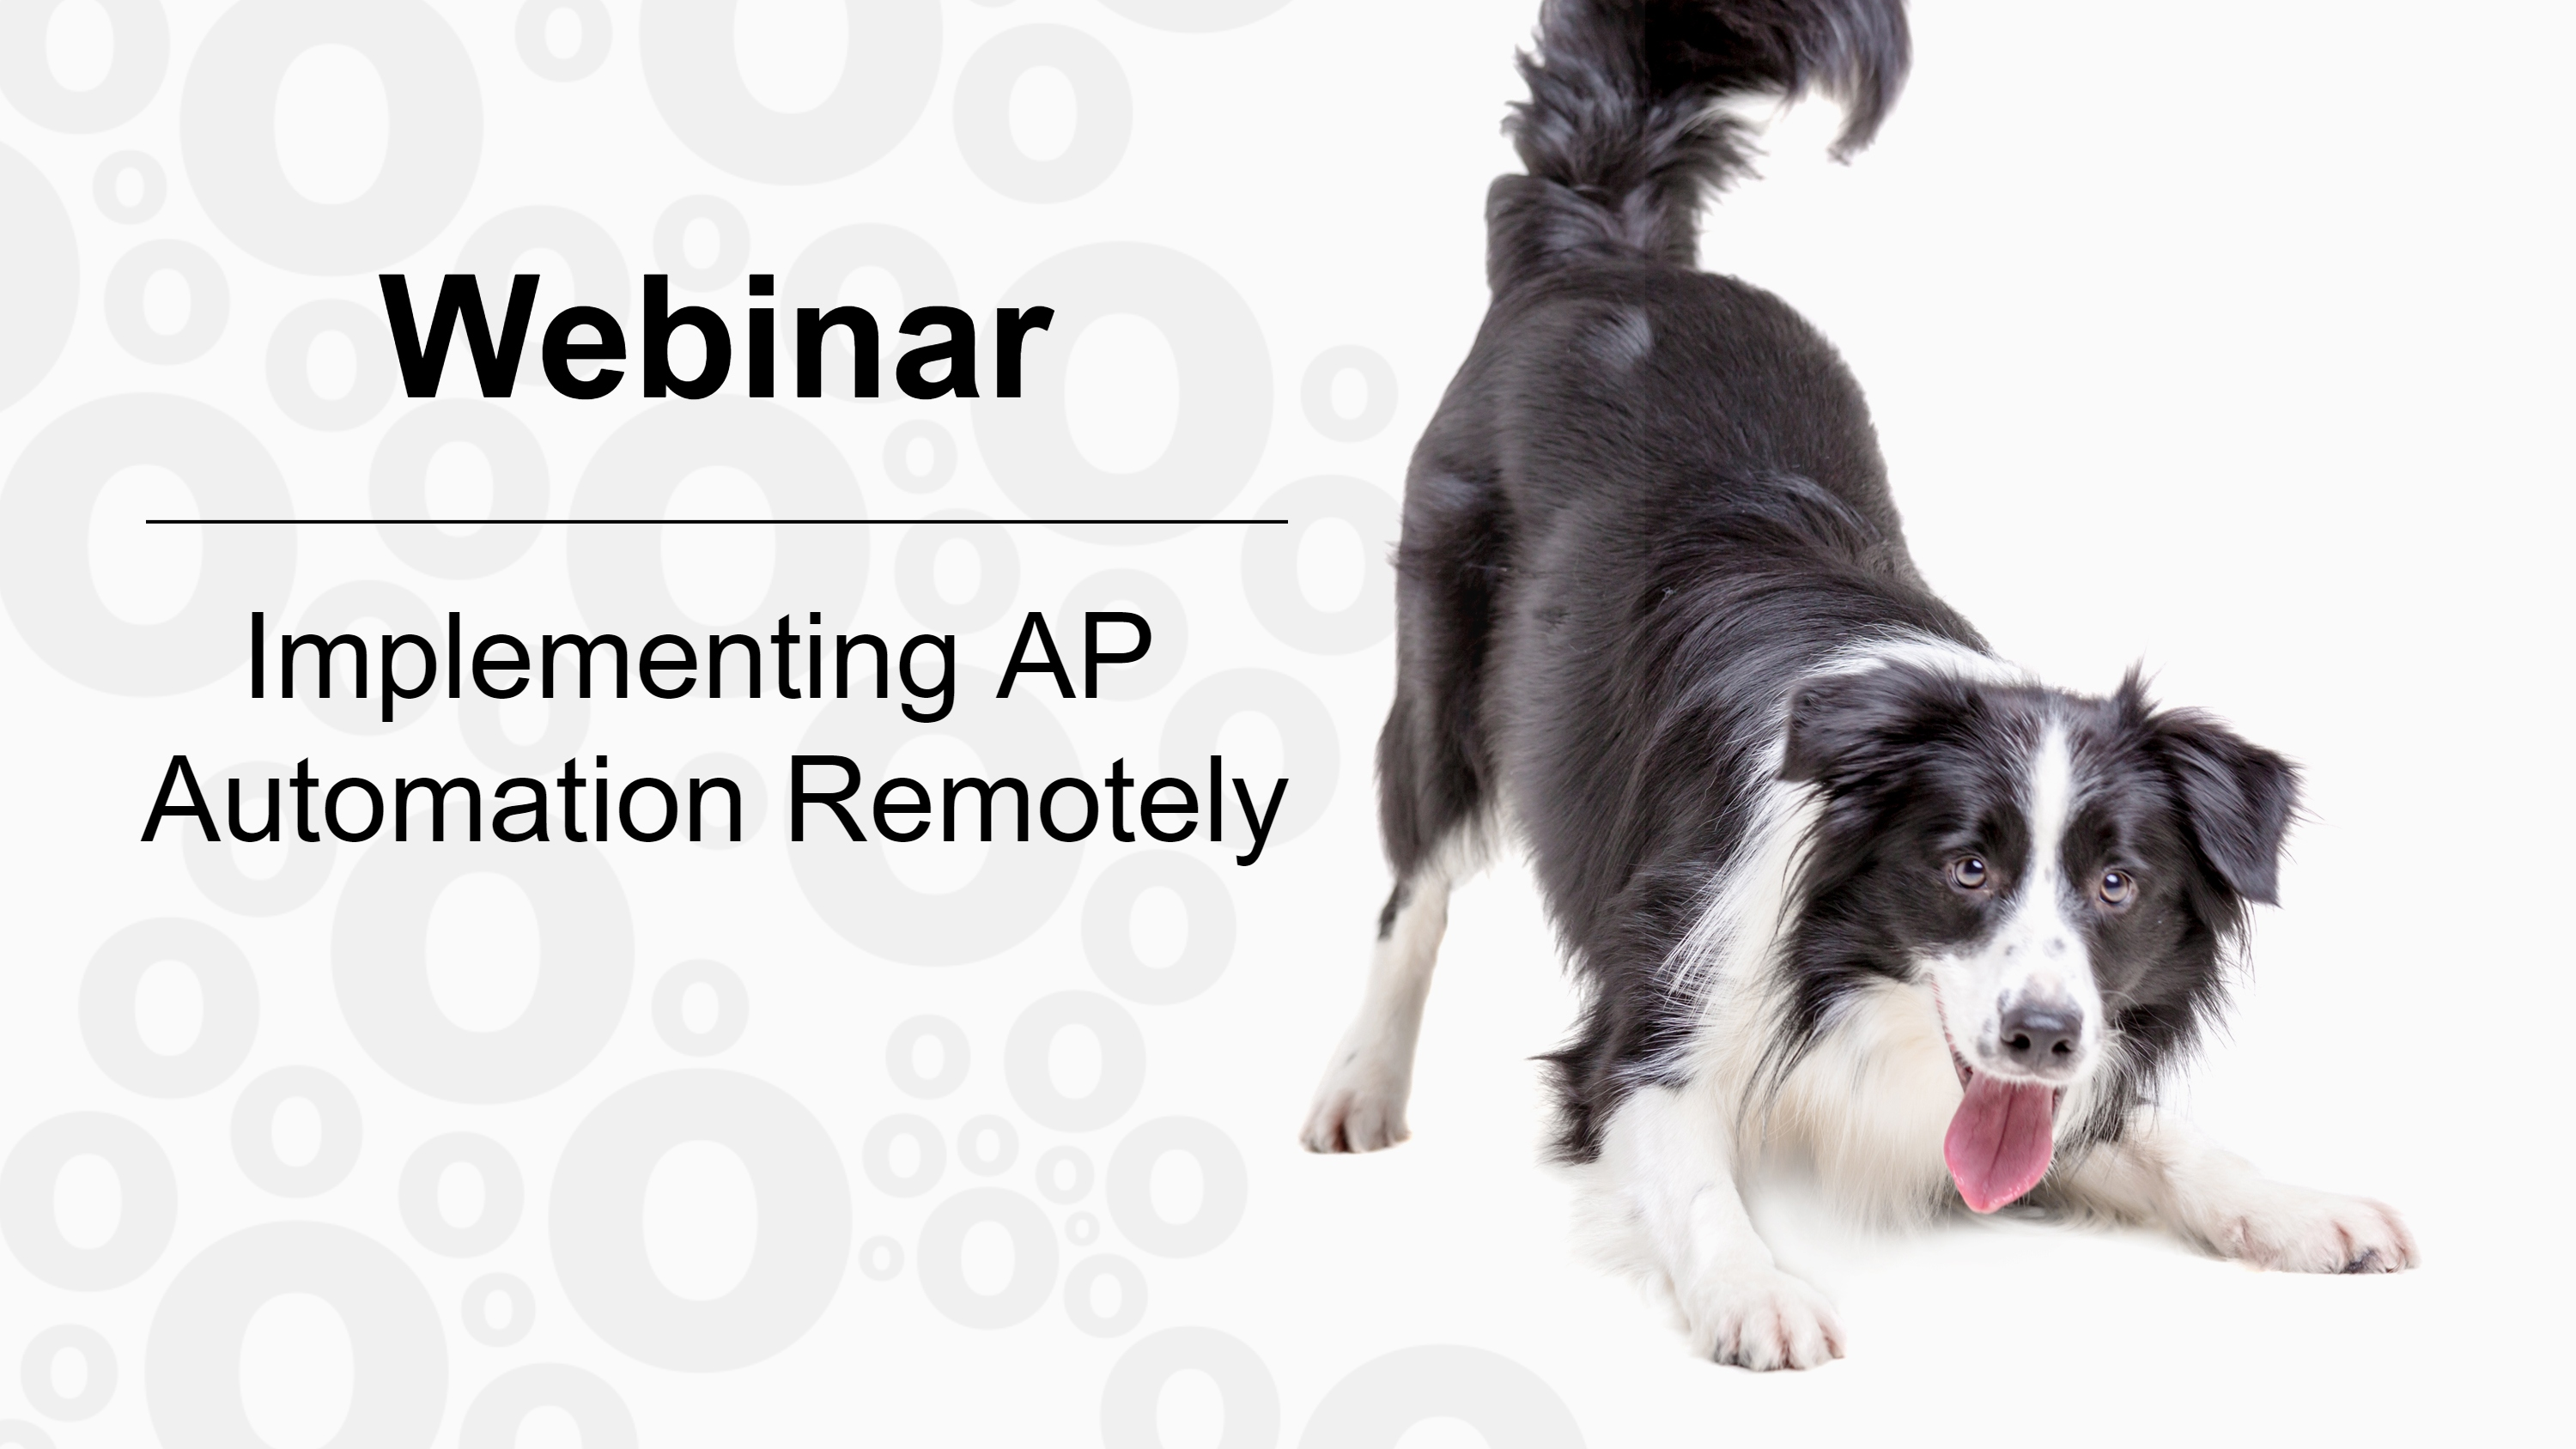 Webinar: Implementing AP Automation Remotely